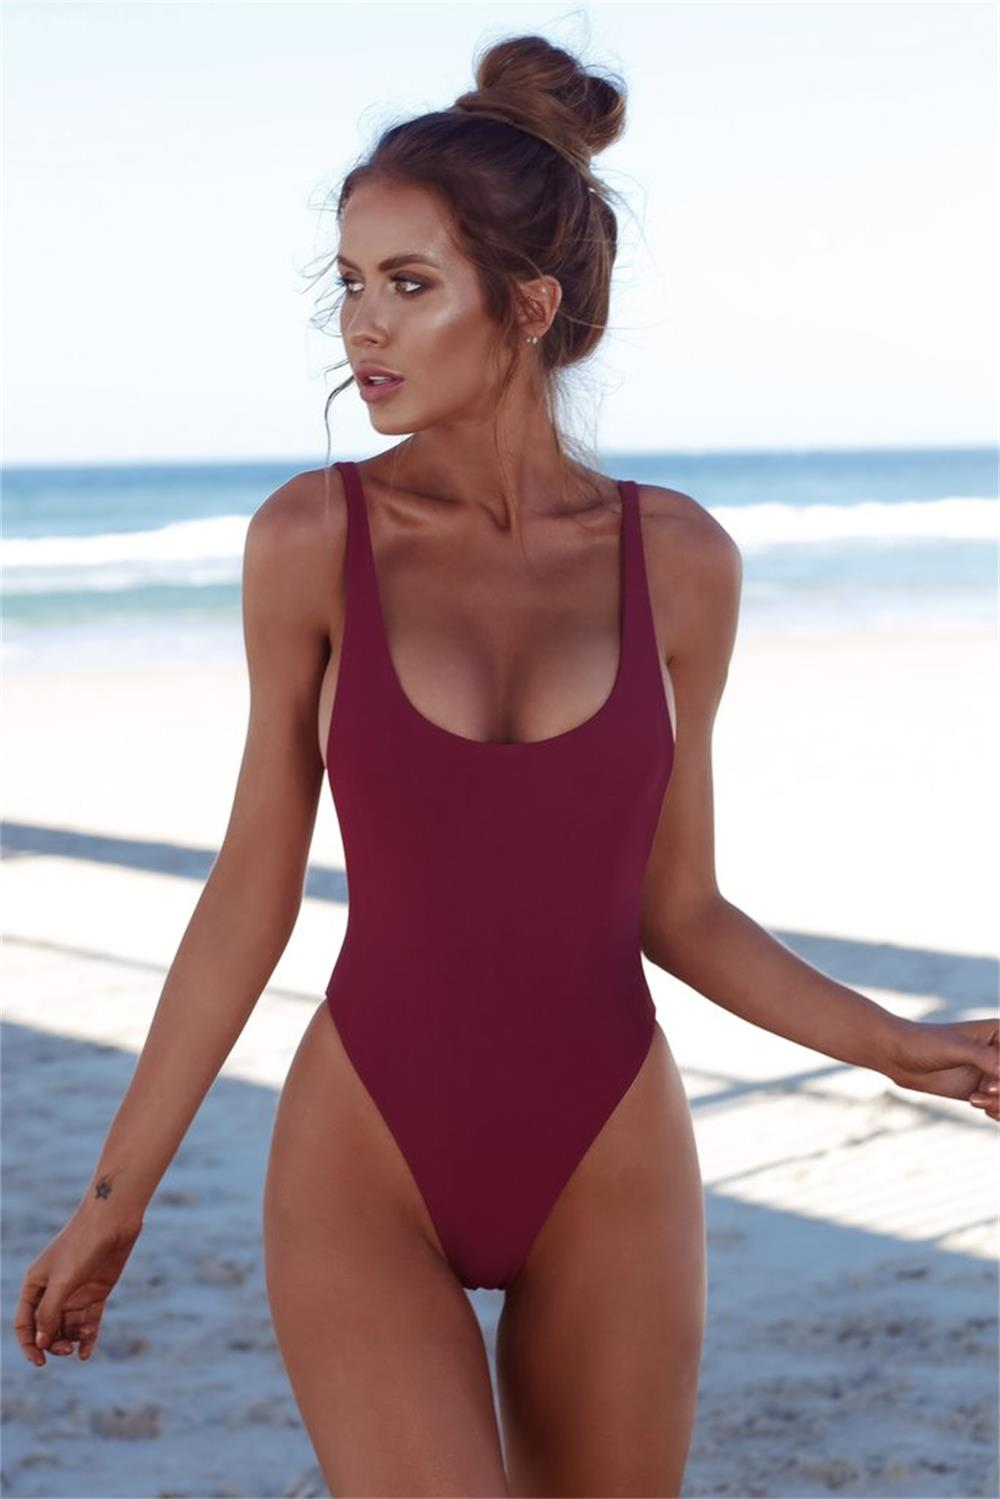 37e3860cc15d1 US $8.49 15% OFF|Thong Black 2018 Sexy One Piece Swimsuit Solid Female  Women Fused Swimwear Backless White Brazilian May Bather Monokini XL-in  Body ...